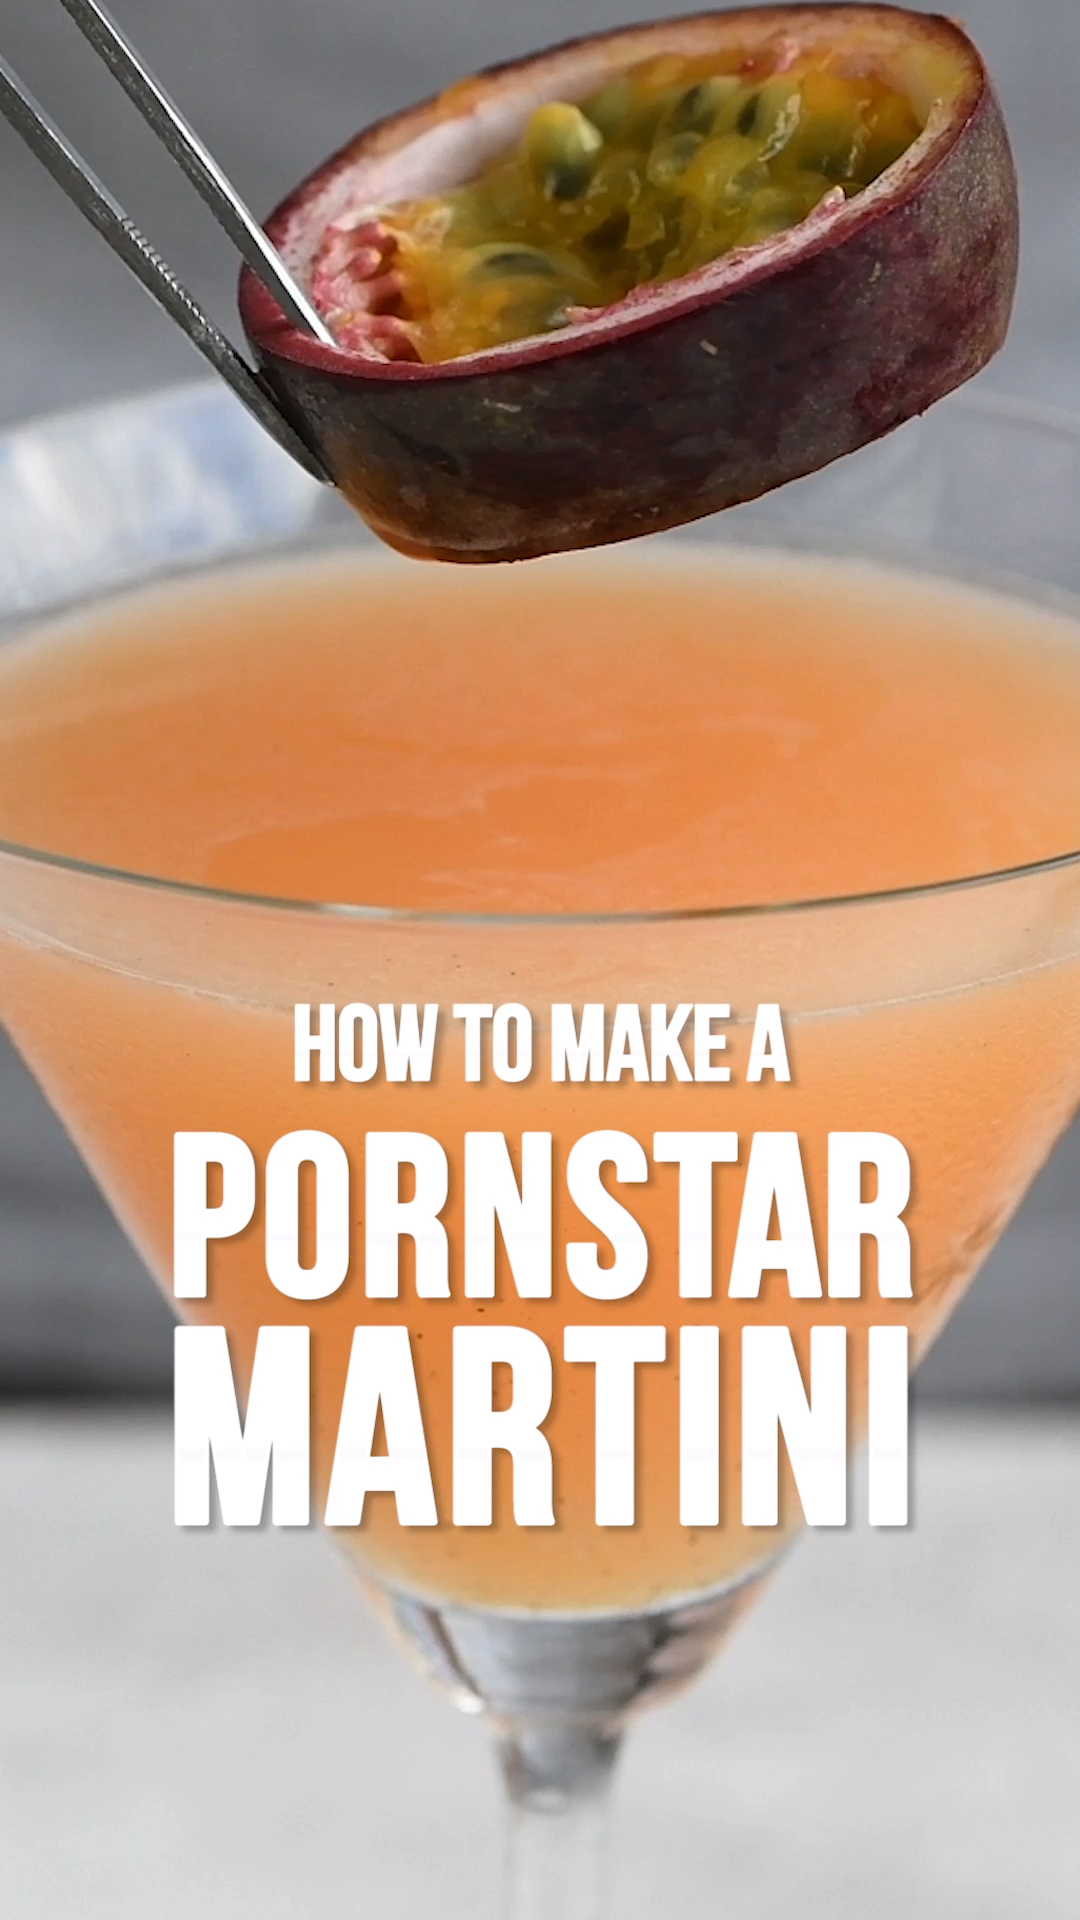 Pornstar Martini #cocktails